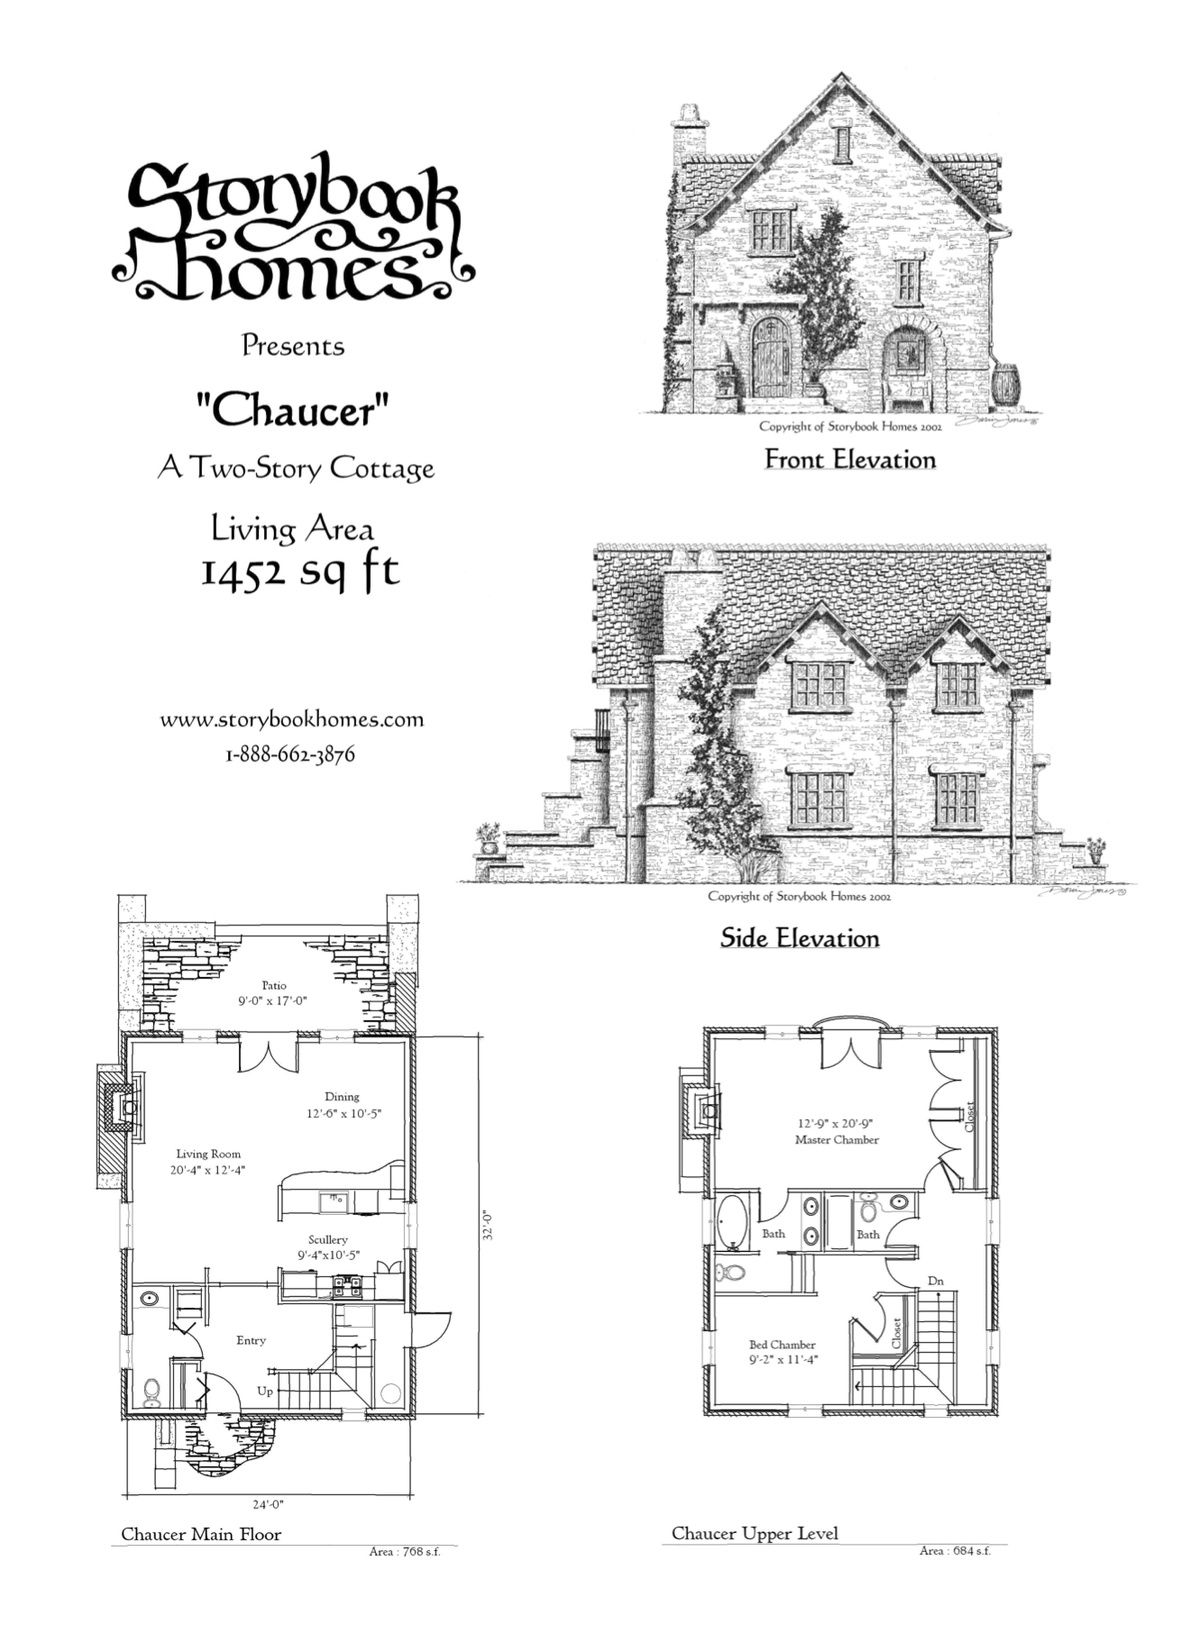 50dfc7992a4a73b4156389412be077f0 Jpg 1 200 1 652 Pixels Storybook House Plan Storybook Homes Vintage House Plans